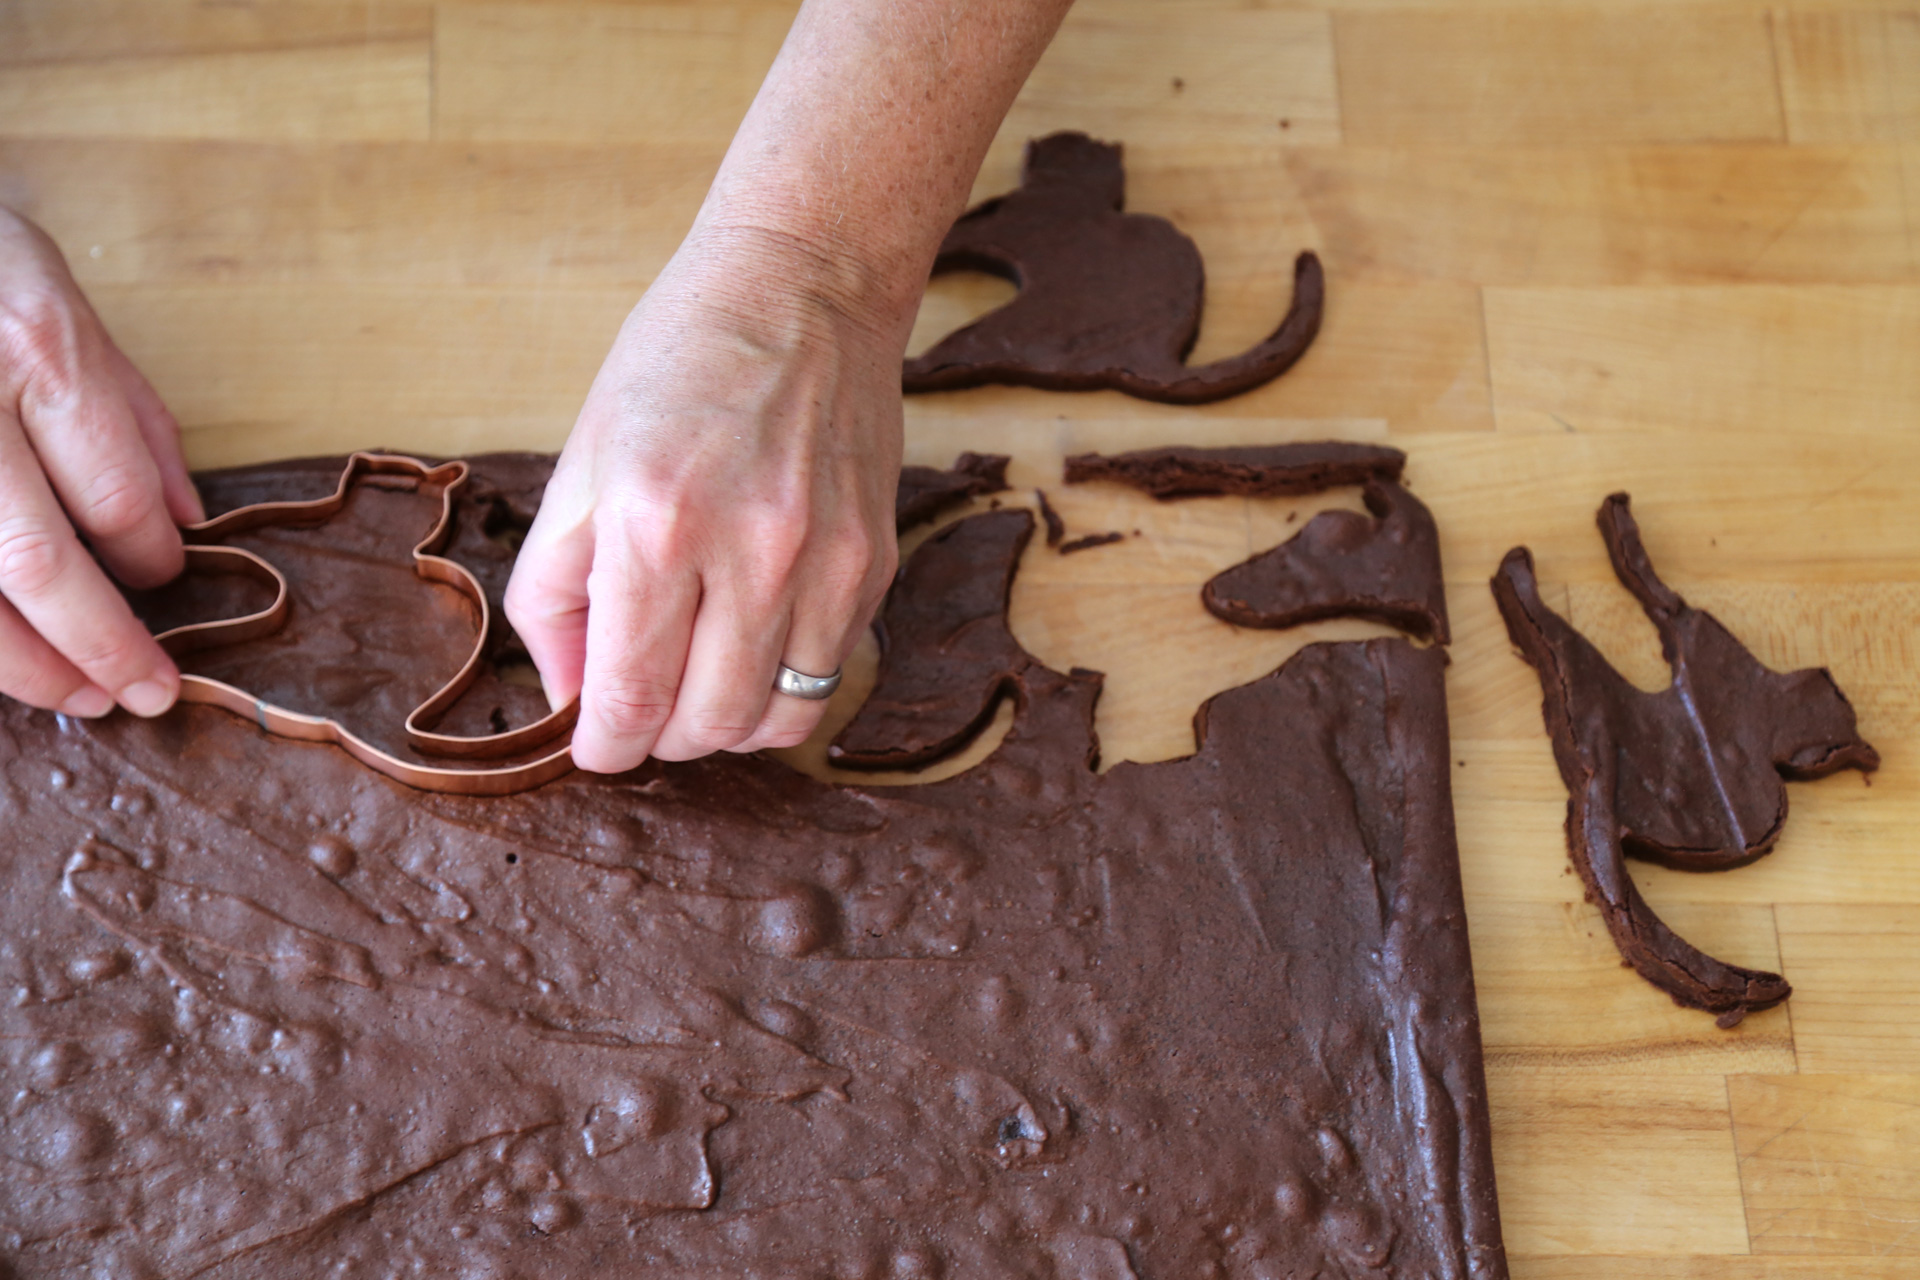 Using your favorite shaped cookie cutter, cut out as many brownie cookies as possible.